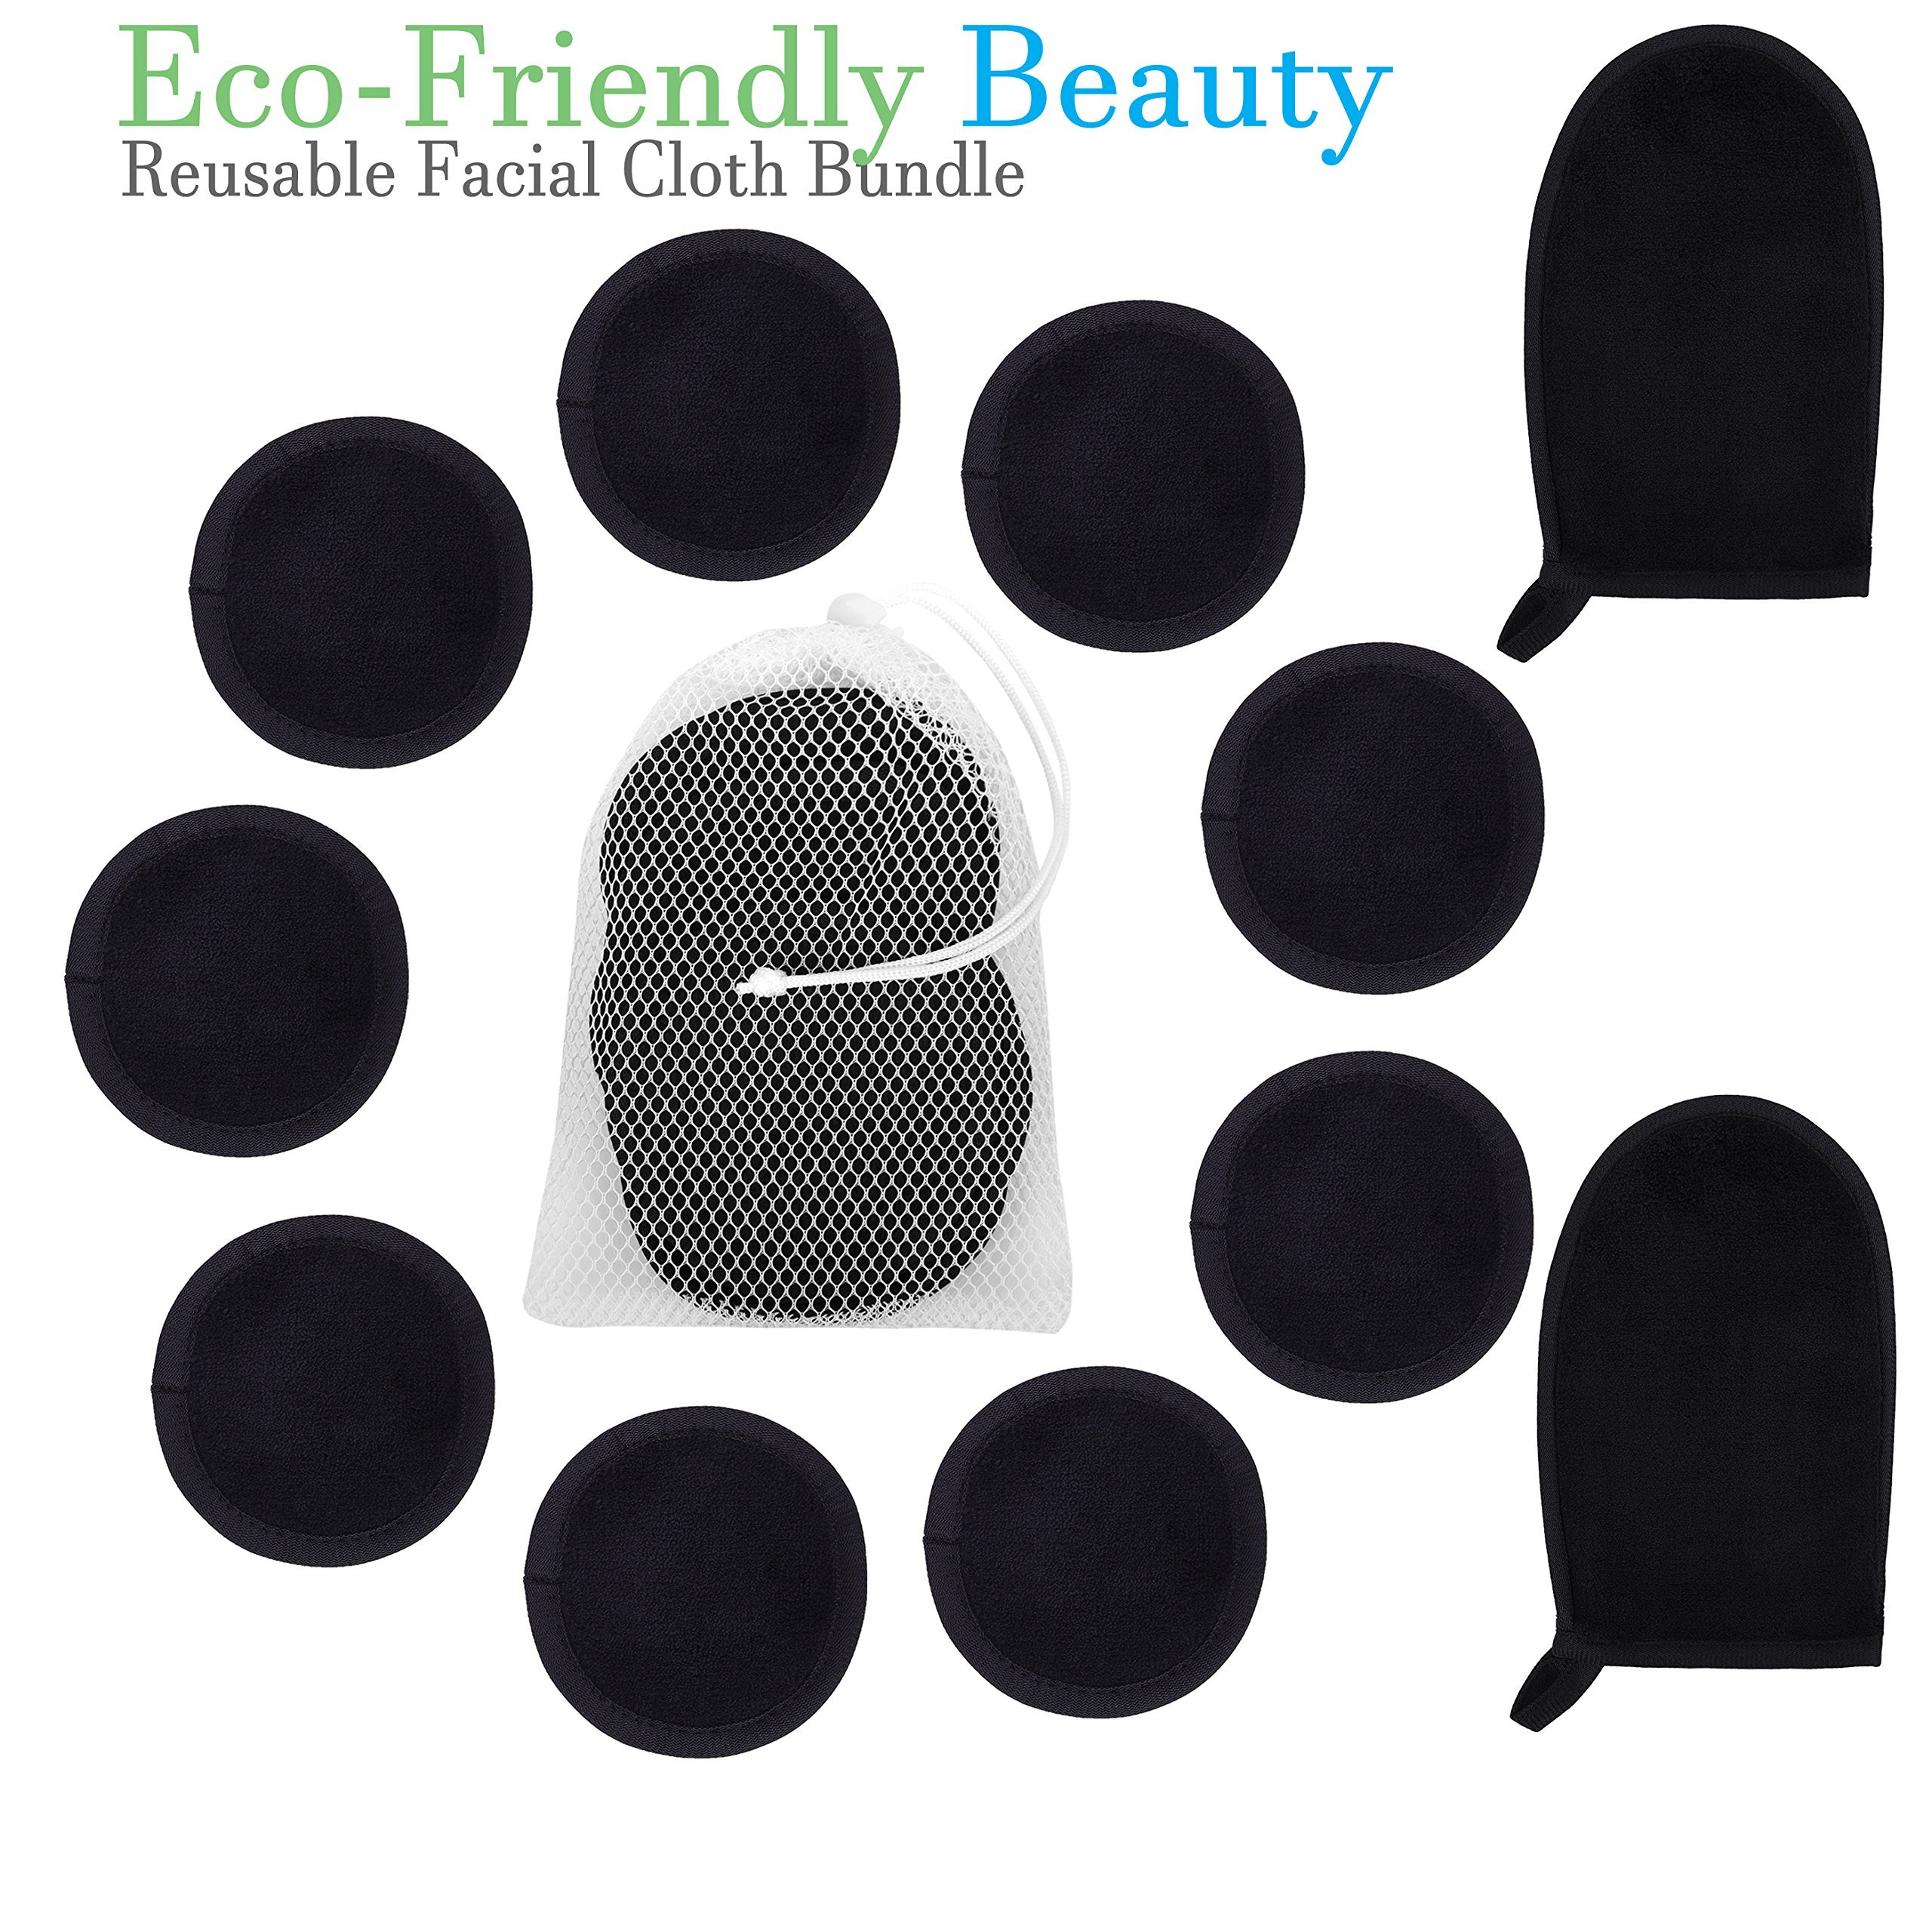 Reusable Makeup Removing Pads and Microfiber Face Cleansing Gloves |12 PACK + LAUNDRY BAG | 2 Black Makeup Remover Mitts 10 Black Eye Makeup Removing Clothes and 1 Laundry Bag | Eco-friendly Beauty